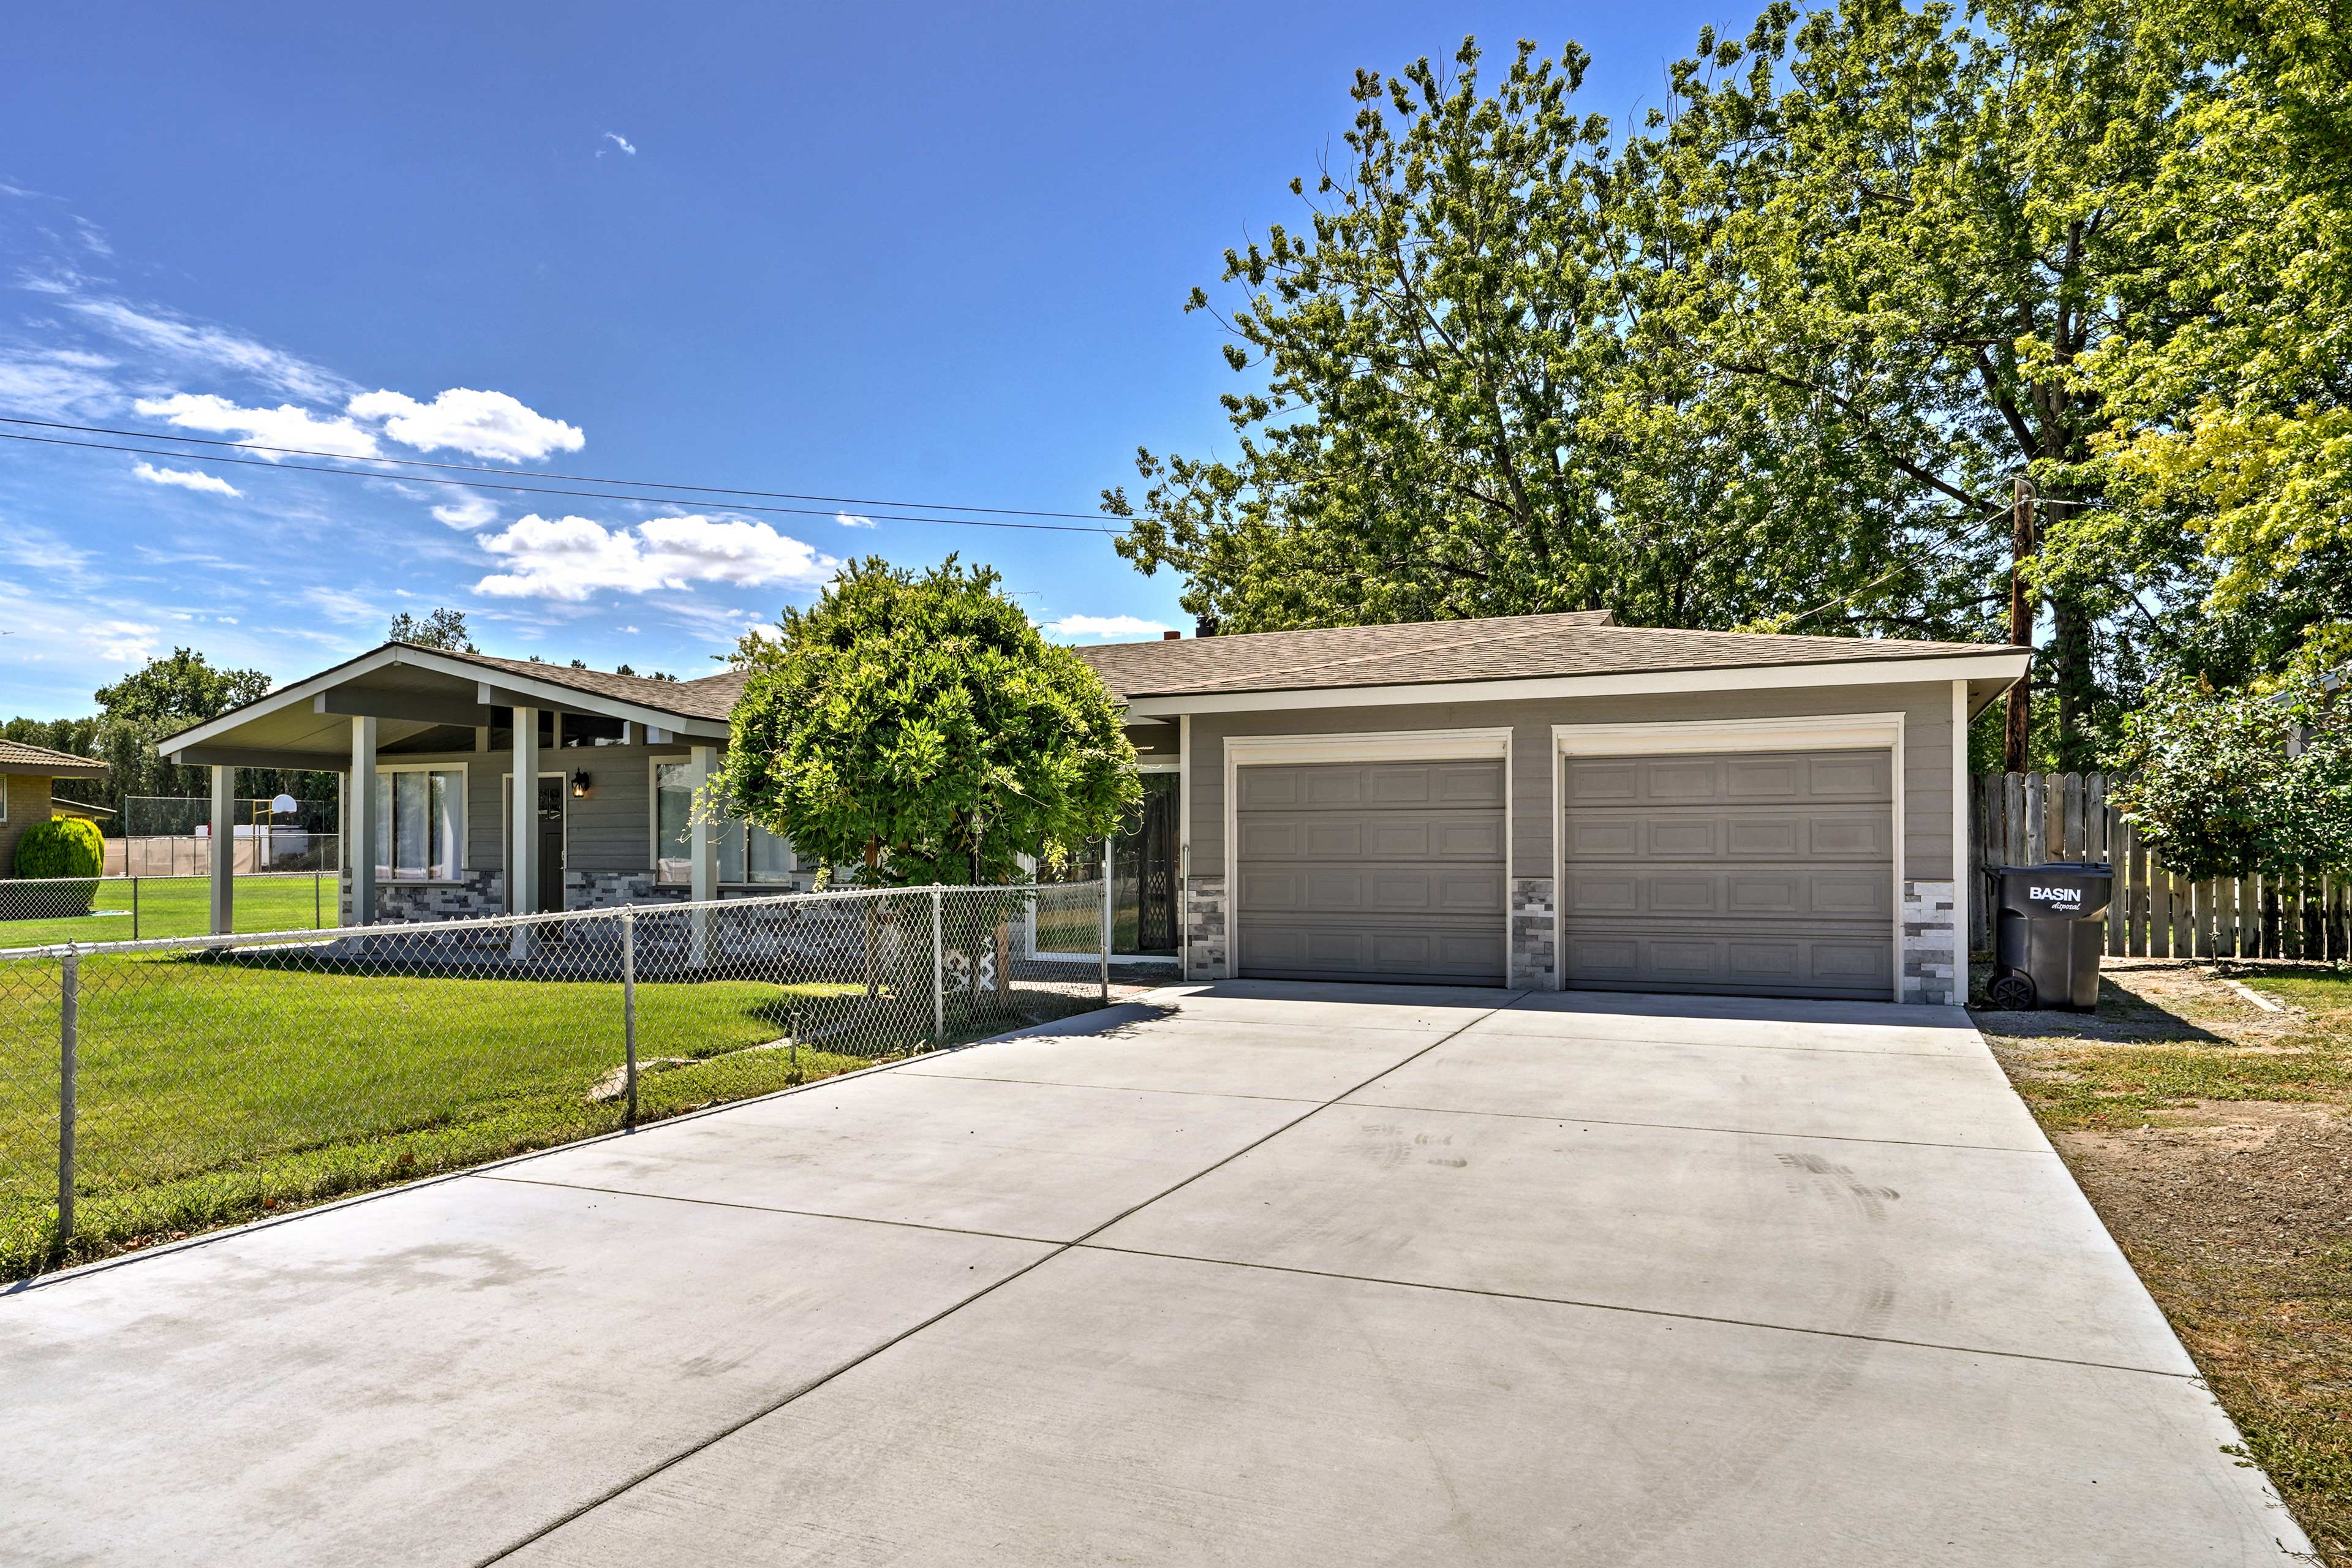 The property offers 2-car garage parking and 2-car driveway parking.